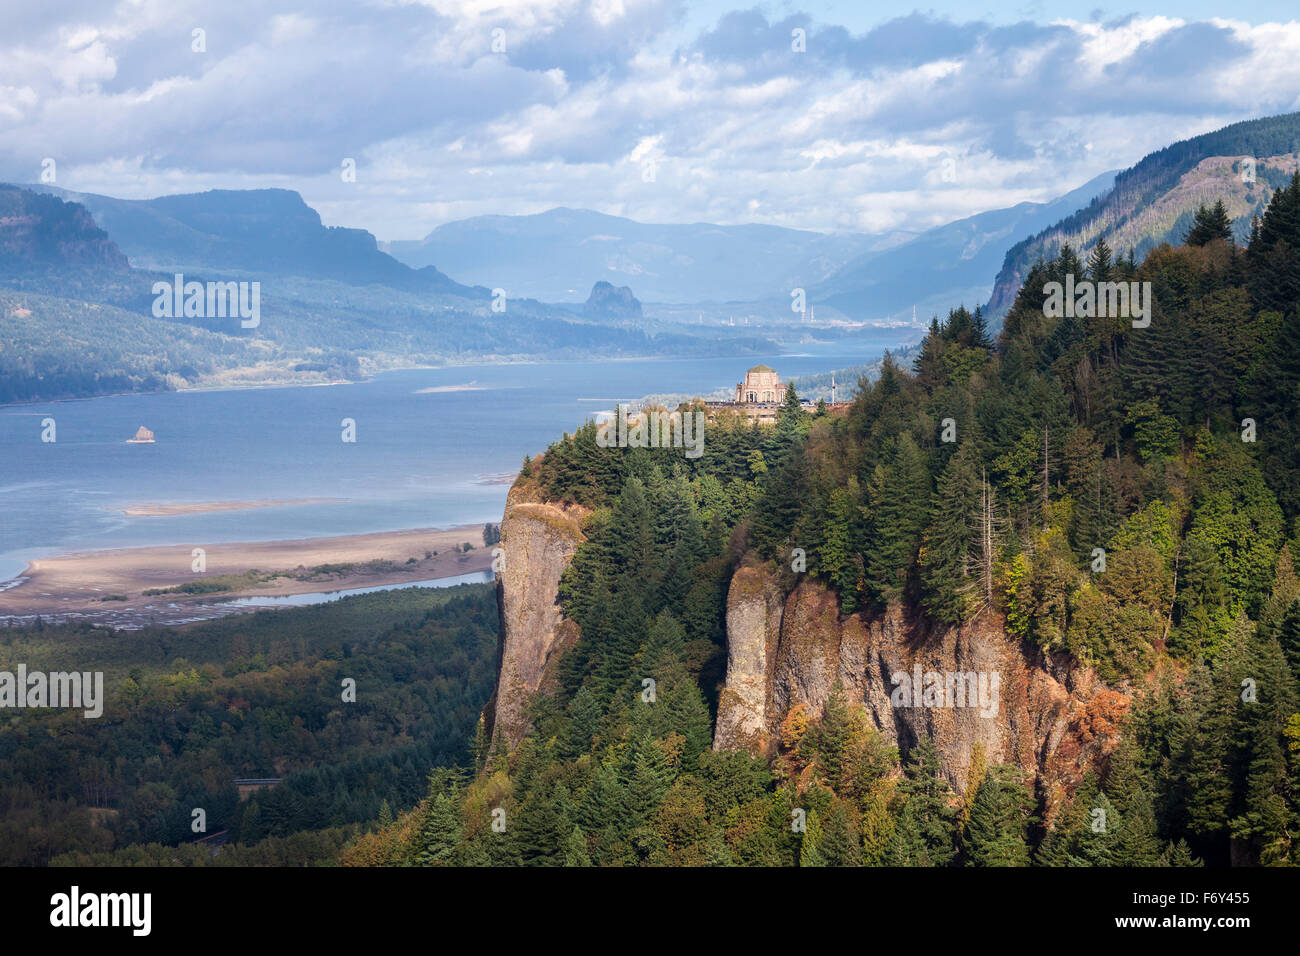 The Vista House overlooks the Columbia Gorge at Crown Point near Portland, Oregon. - Stock Image